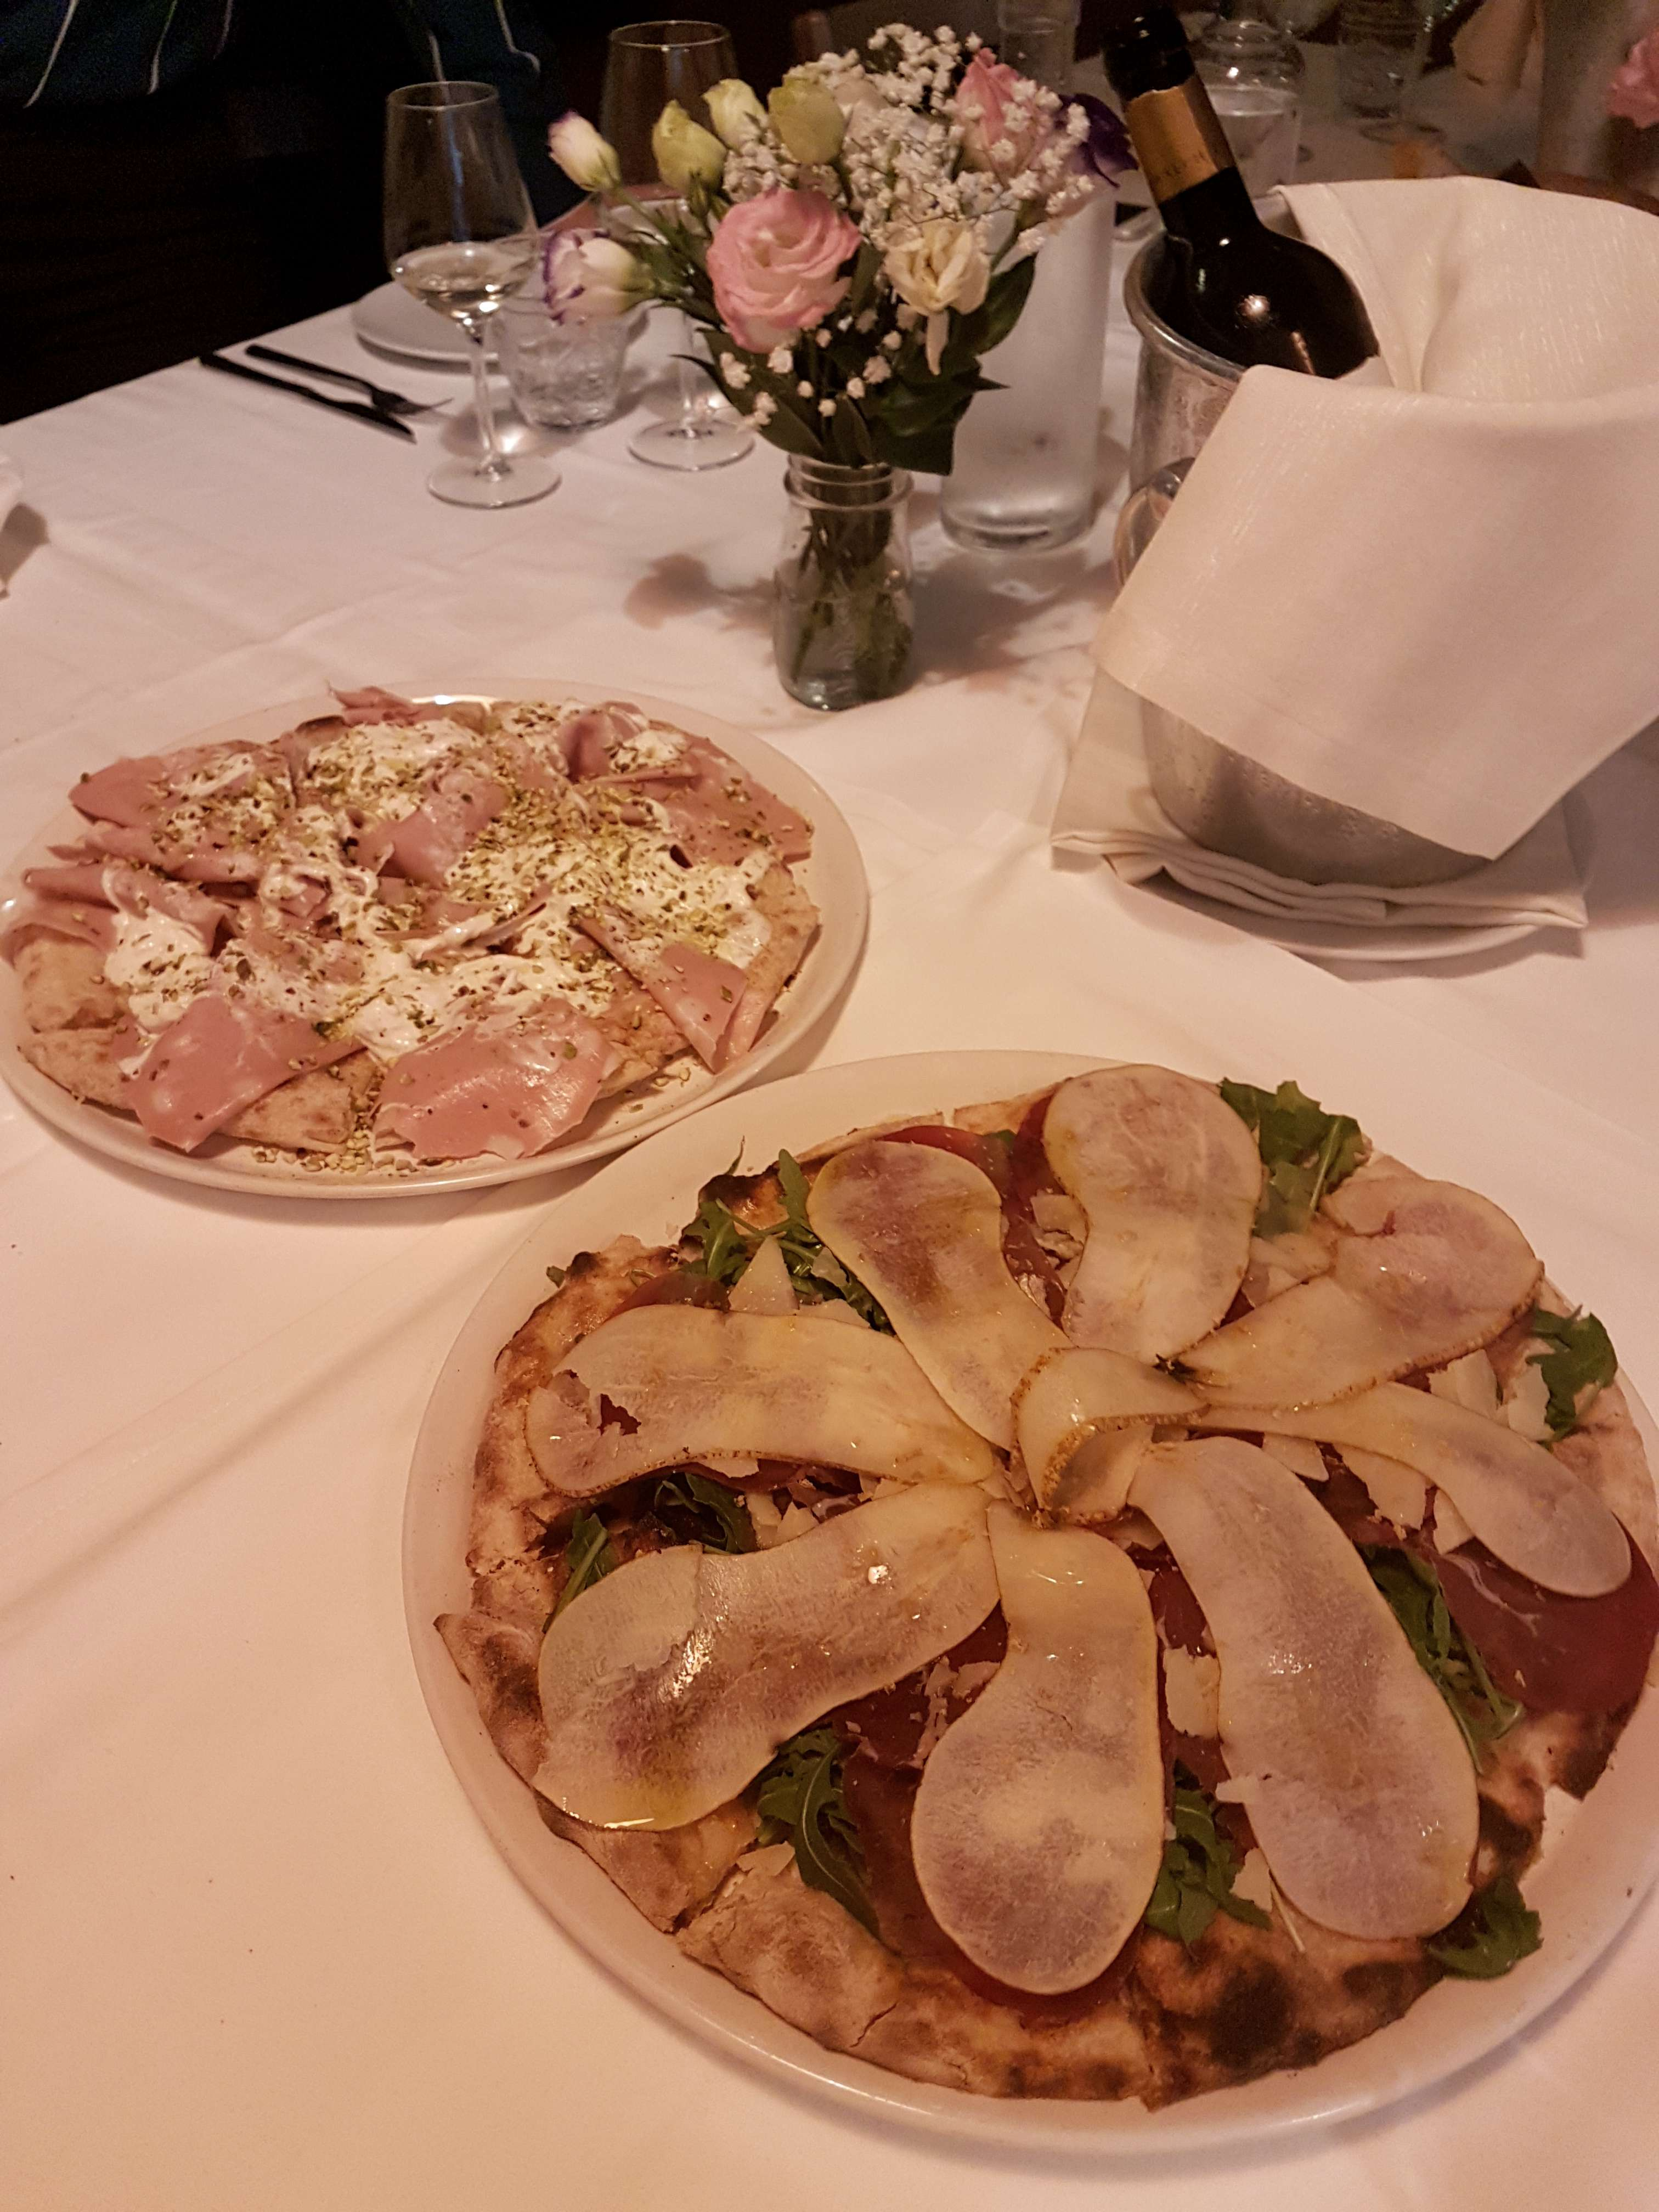 Tivoli restaurant La Fornarina serves exceptional gourmet food as well as pizzas and Roman classics, a short drive from Rome, Italy